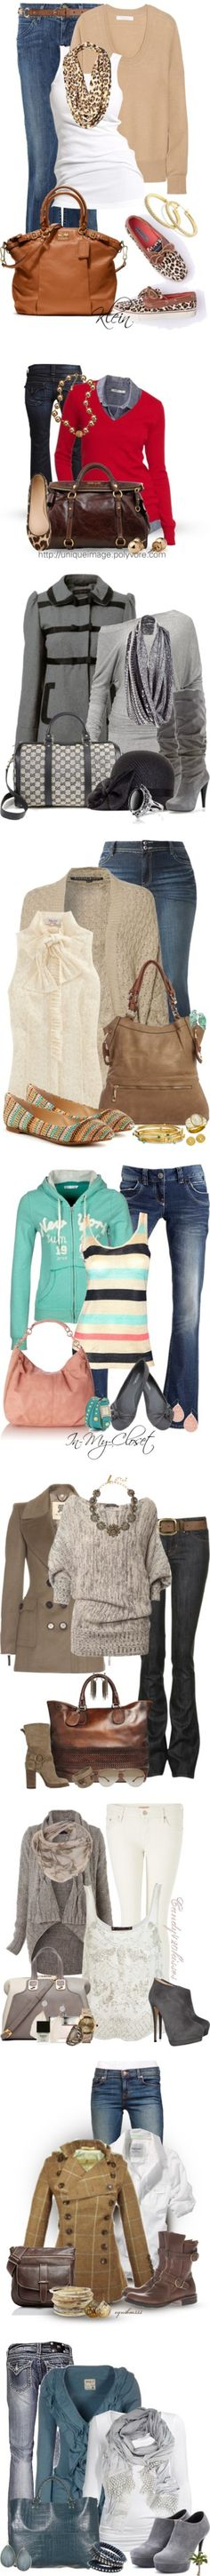 """Comfy and Cute"" by in-my-closet on Polyvore"